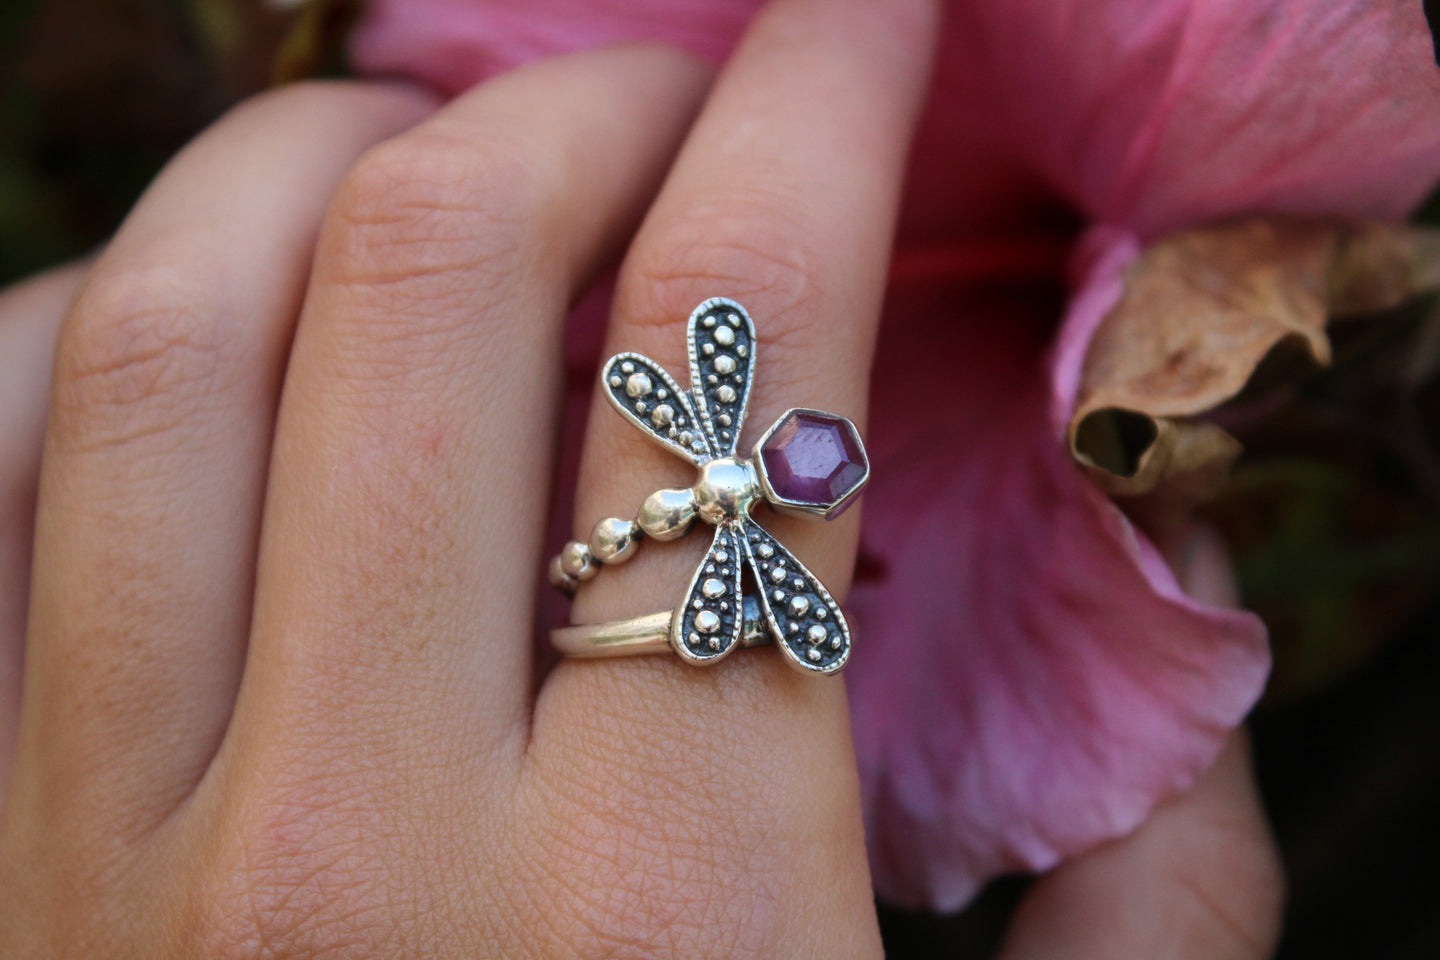 Size 7.5; Ruby Stalactite Dragonfly Ring